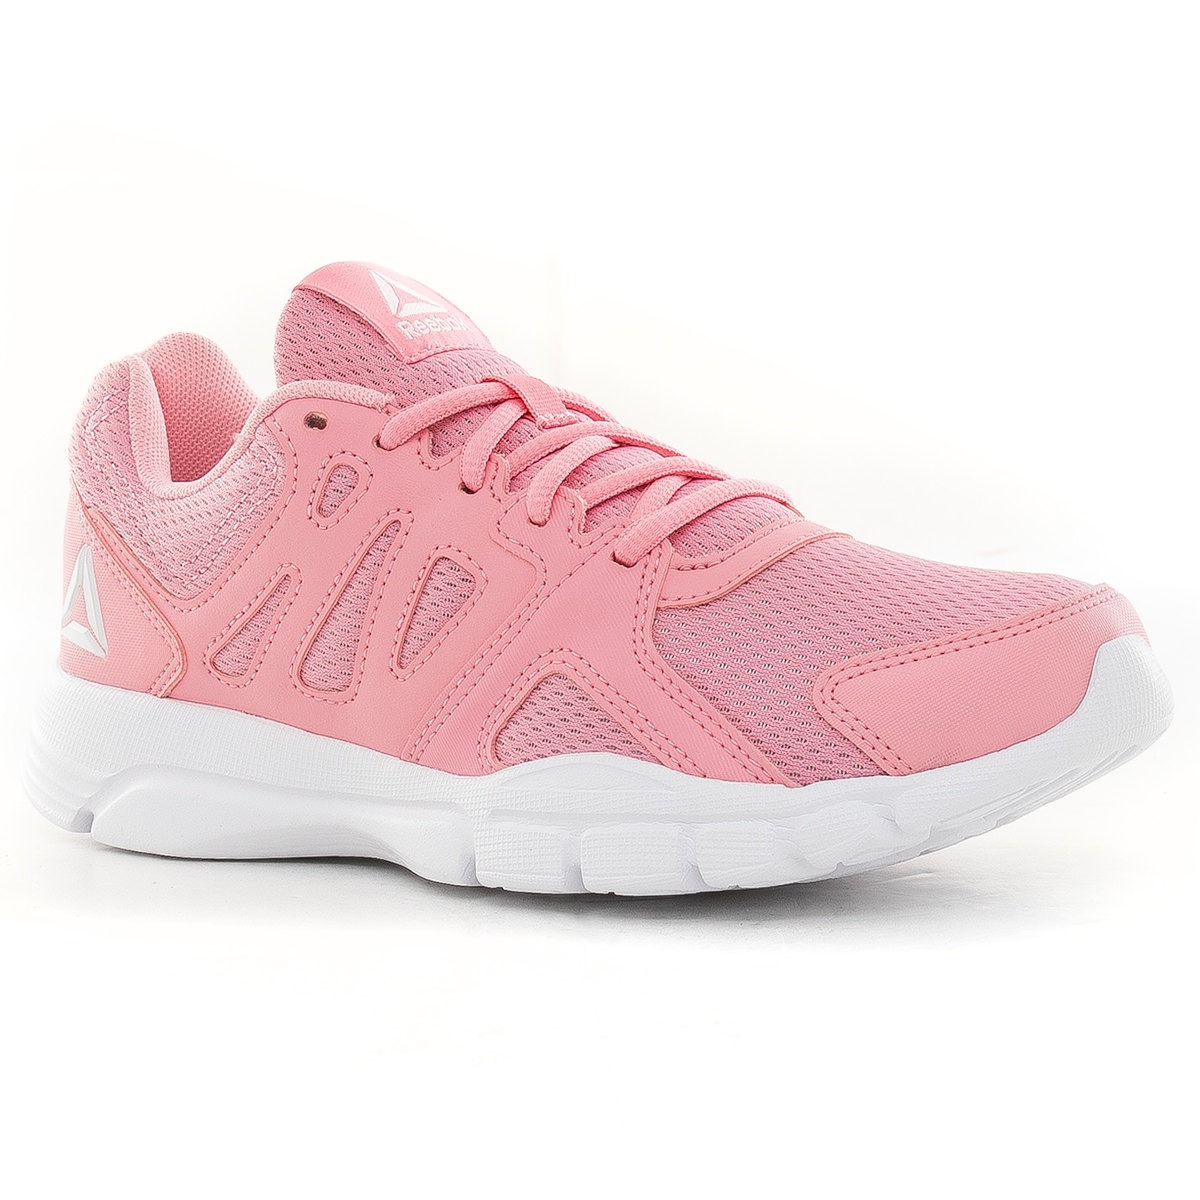 b0f013e8828 zapatillas trainfusion nine 3.0 rosa reebok. Cargando zoom.